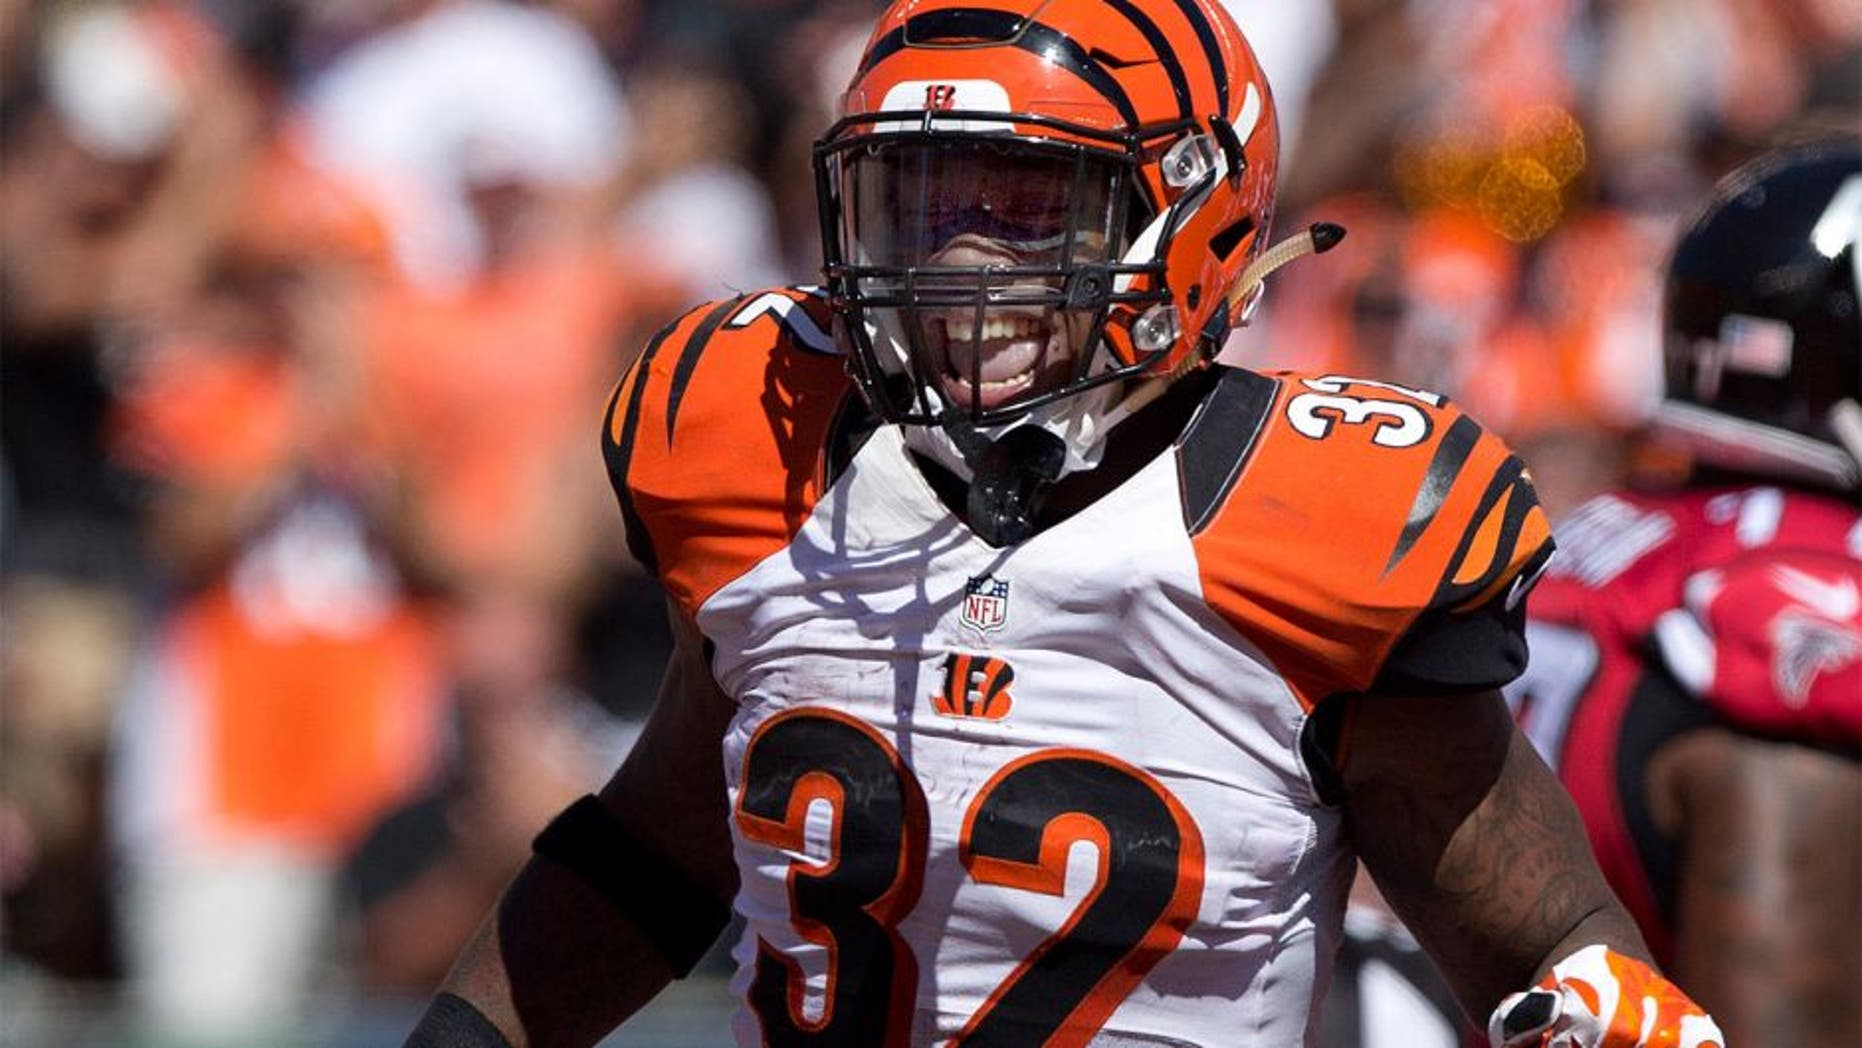 Sep 14, 2014; Cincinnati, OH, USA; Cincinnati Bengals running back Jeremy Hill (32) celebrates a touchdown in the second half against the Atlanta Falcons at Paul Brown Stadium. The Bengals won 24-10. Mandatory Credit: Aaron Doster-USA TODAY Sports